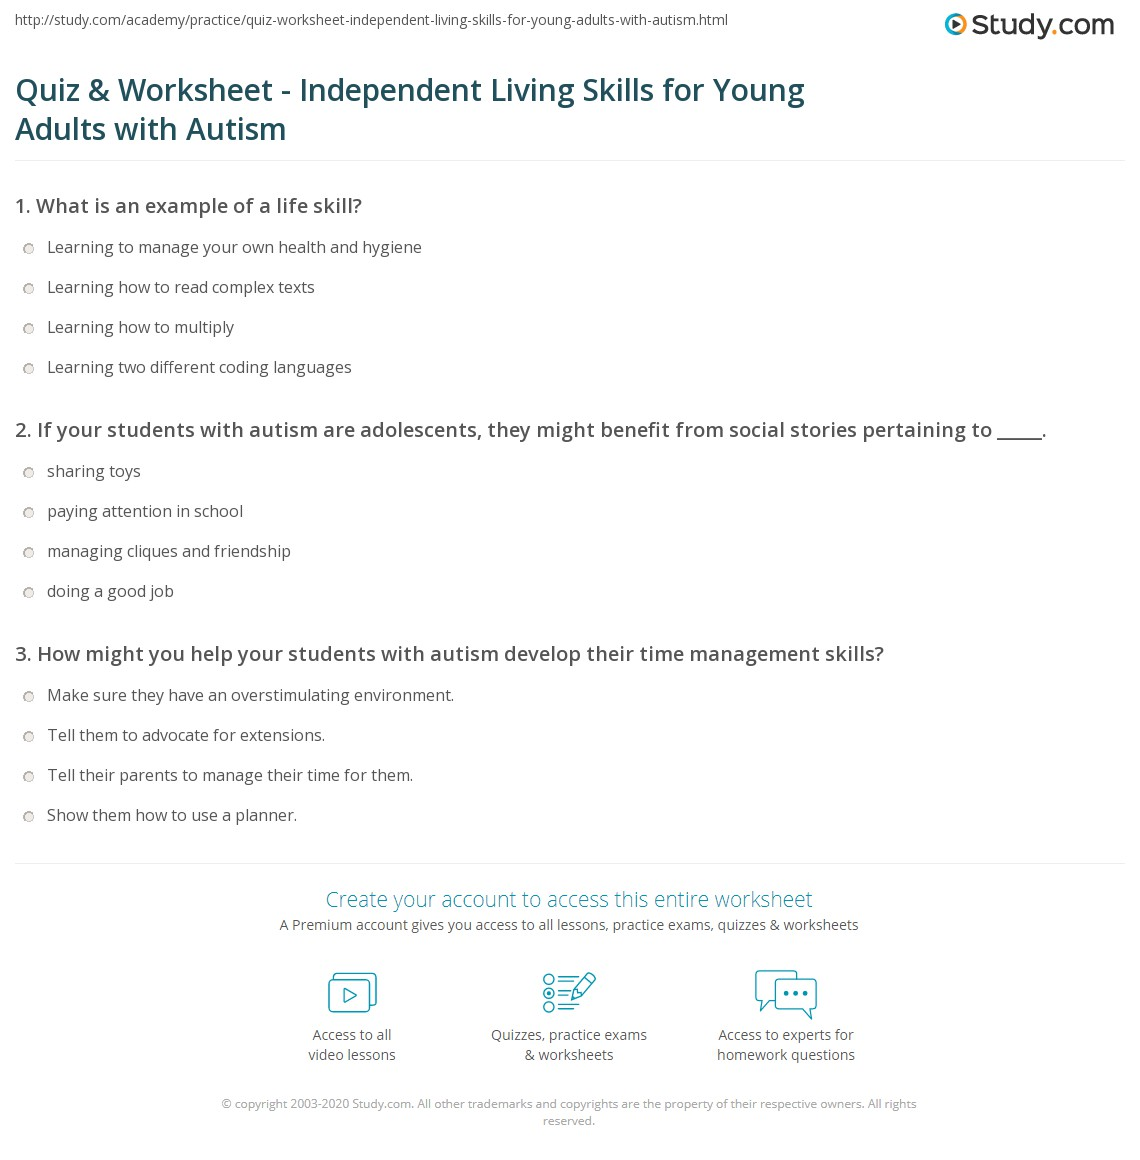 Worksheets Life Skills For Adults Worksheets quiz worksheet independent living skills for young adults with print teaching life to autism worksheet